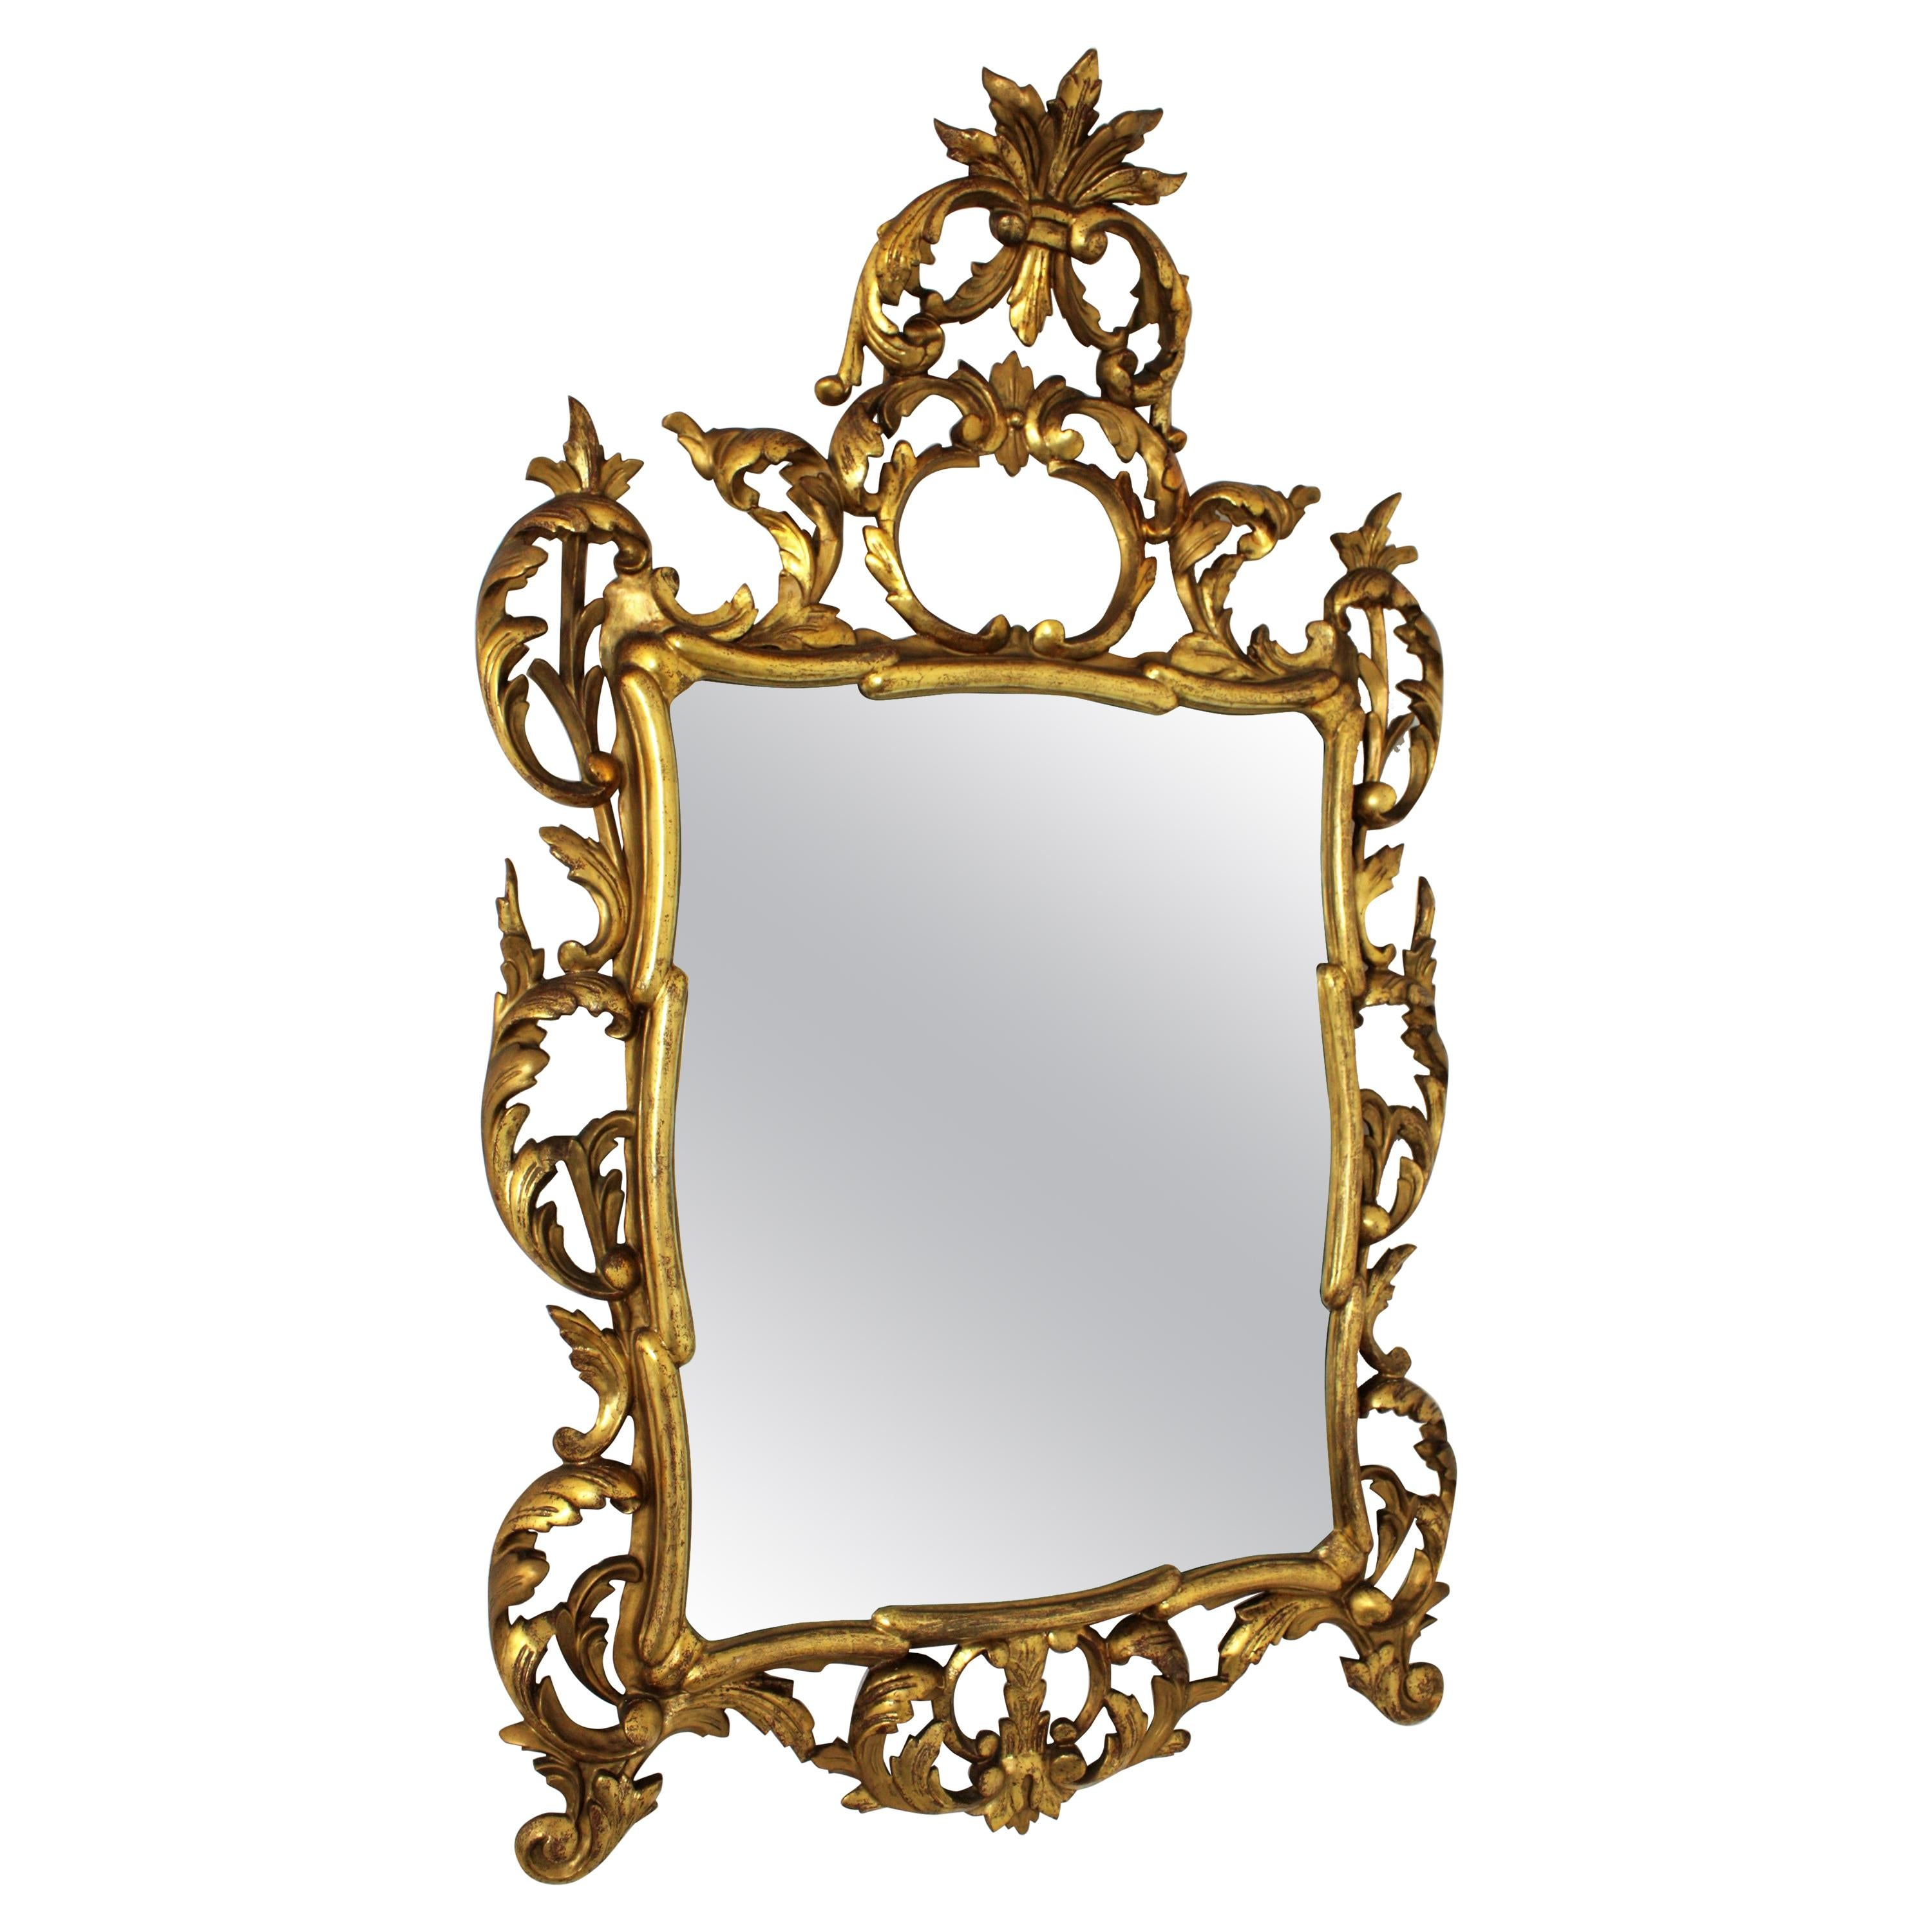 Spanish Rococo Giltwood Mirror with Crest